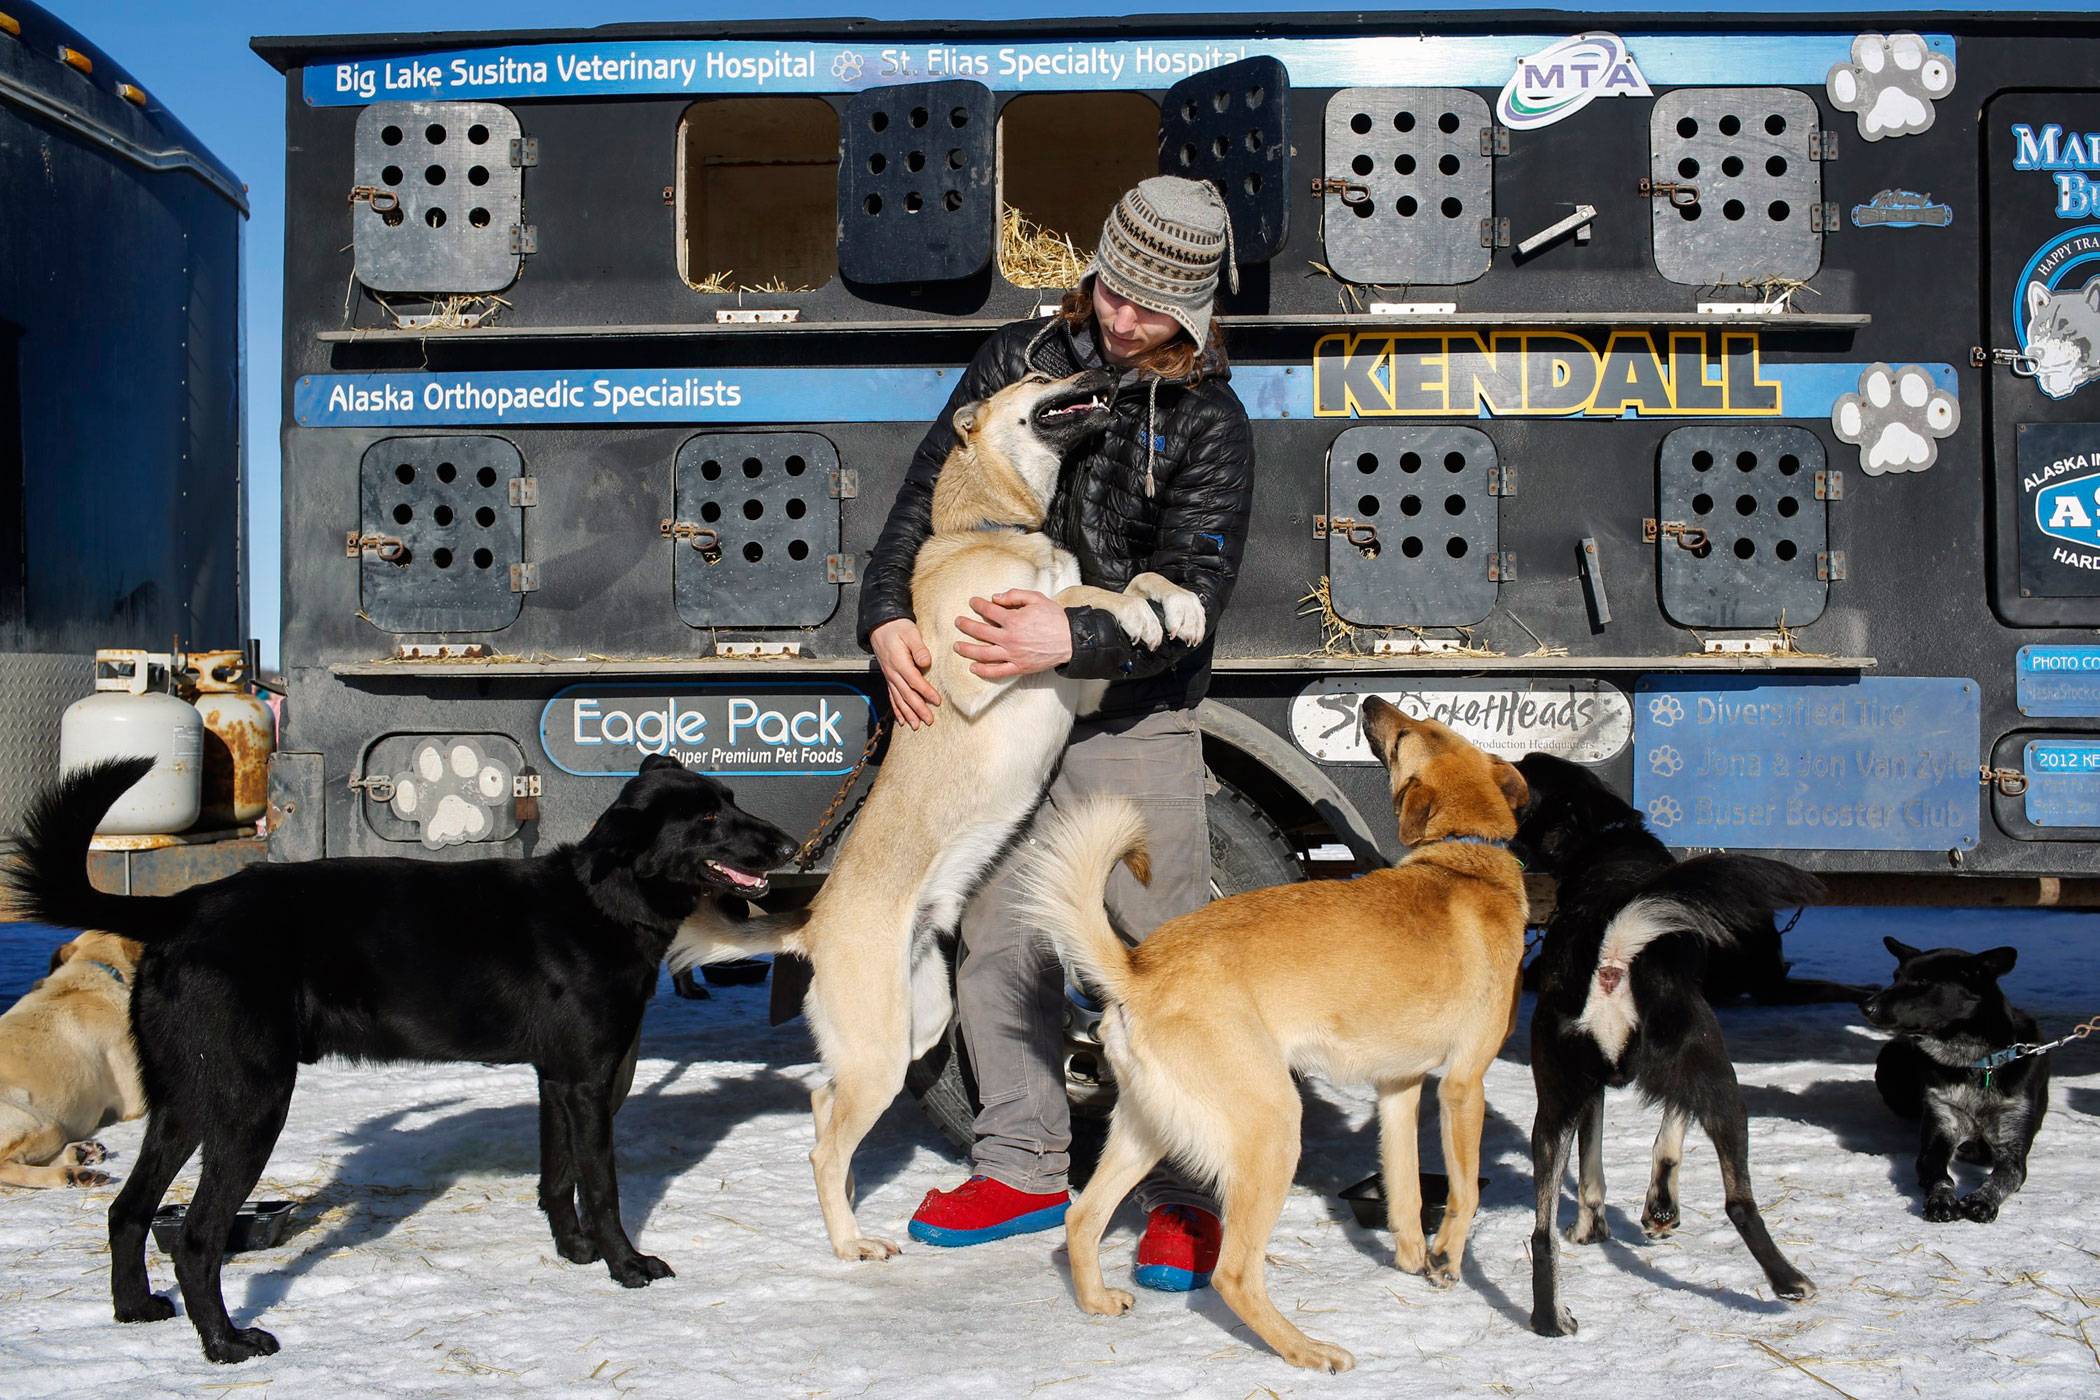 Champion musher Martin Buser's son, Rohn, greets dogs from his dad's team before the restart of the Iditarod Trail Sled Dog Race in Willow, Alaska on March 6.